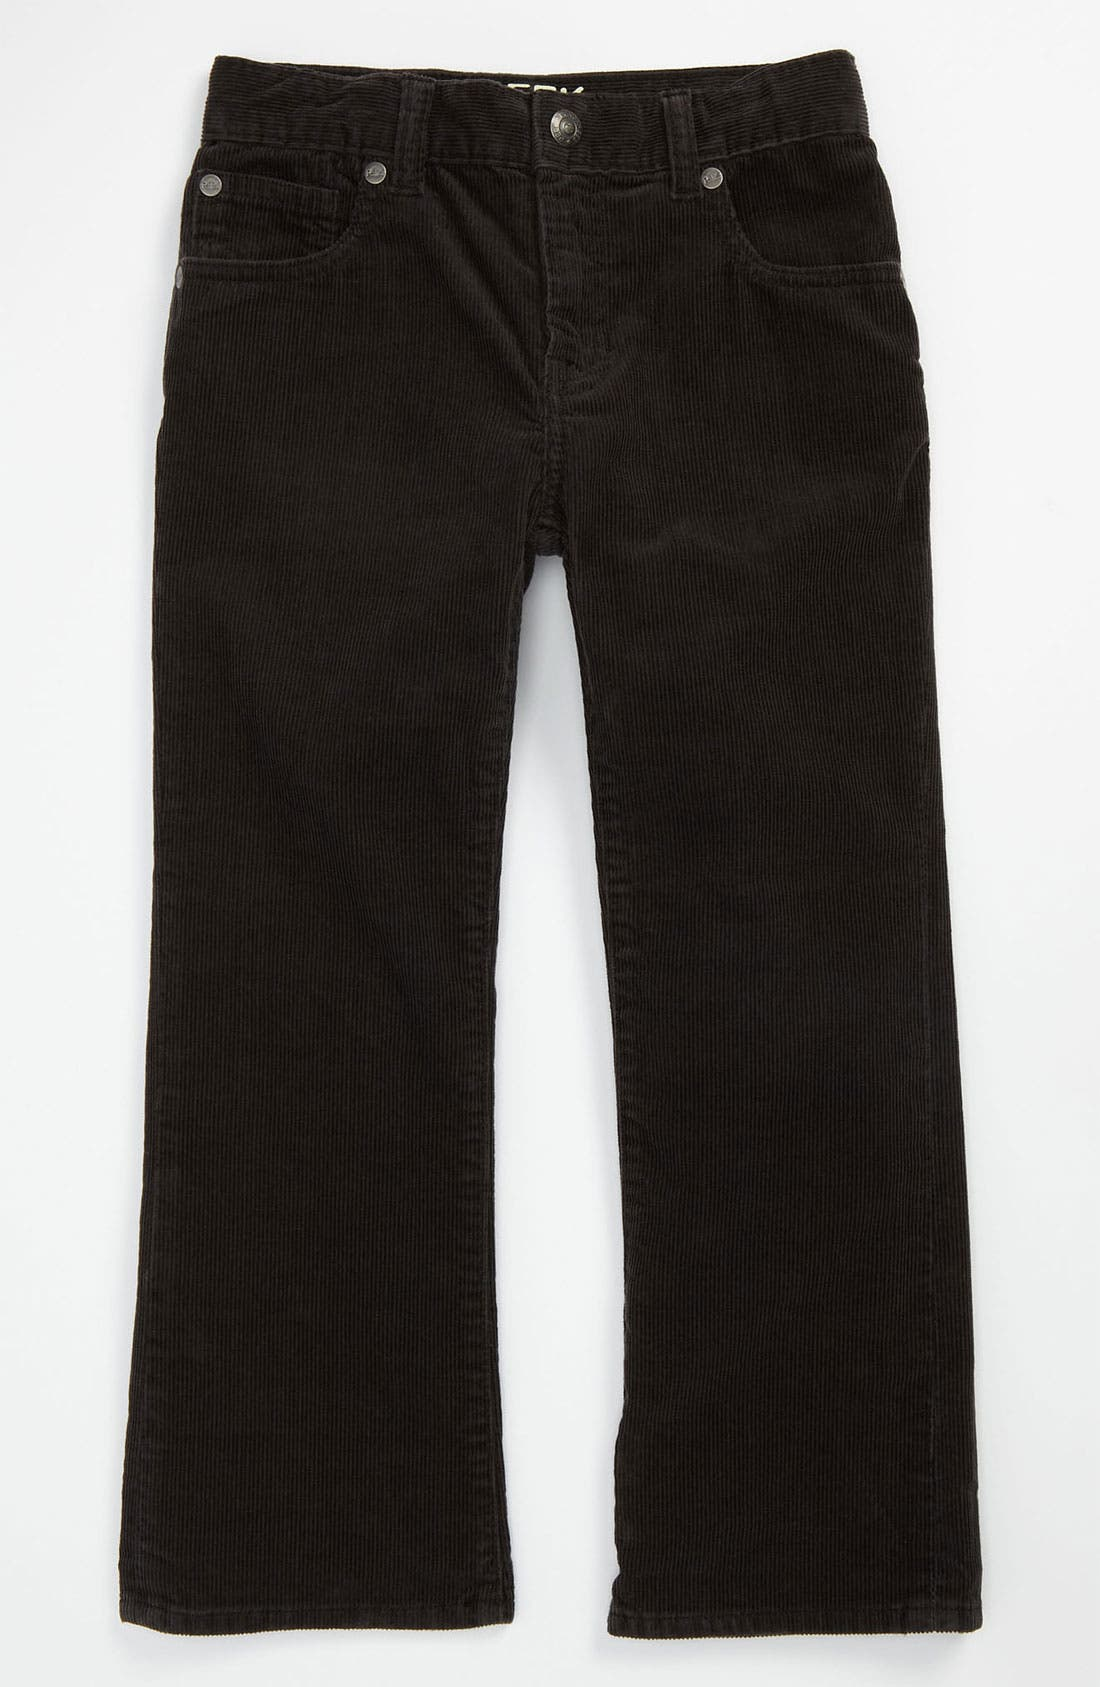 Main Image - Peek 'Sullivan' Corduroy Jeans (Toddler, Little Boys & Big Boys)